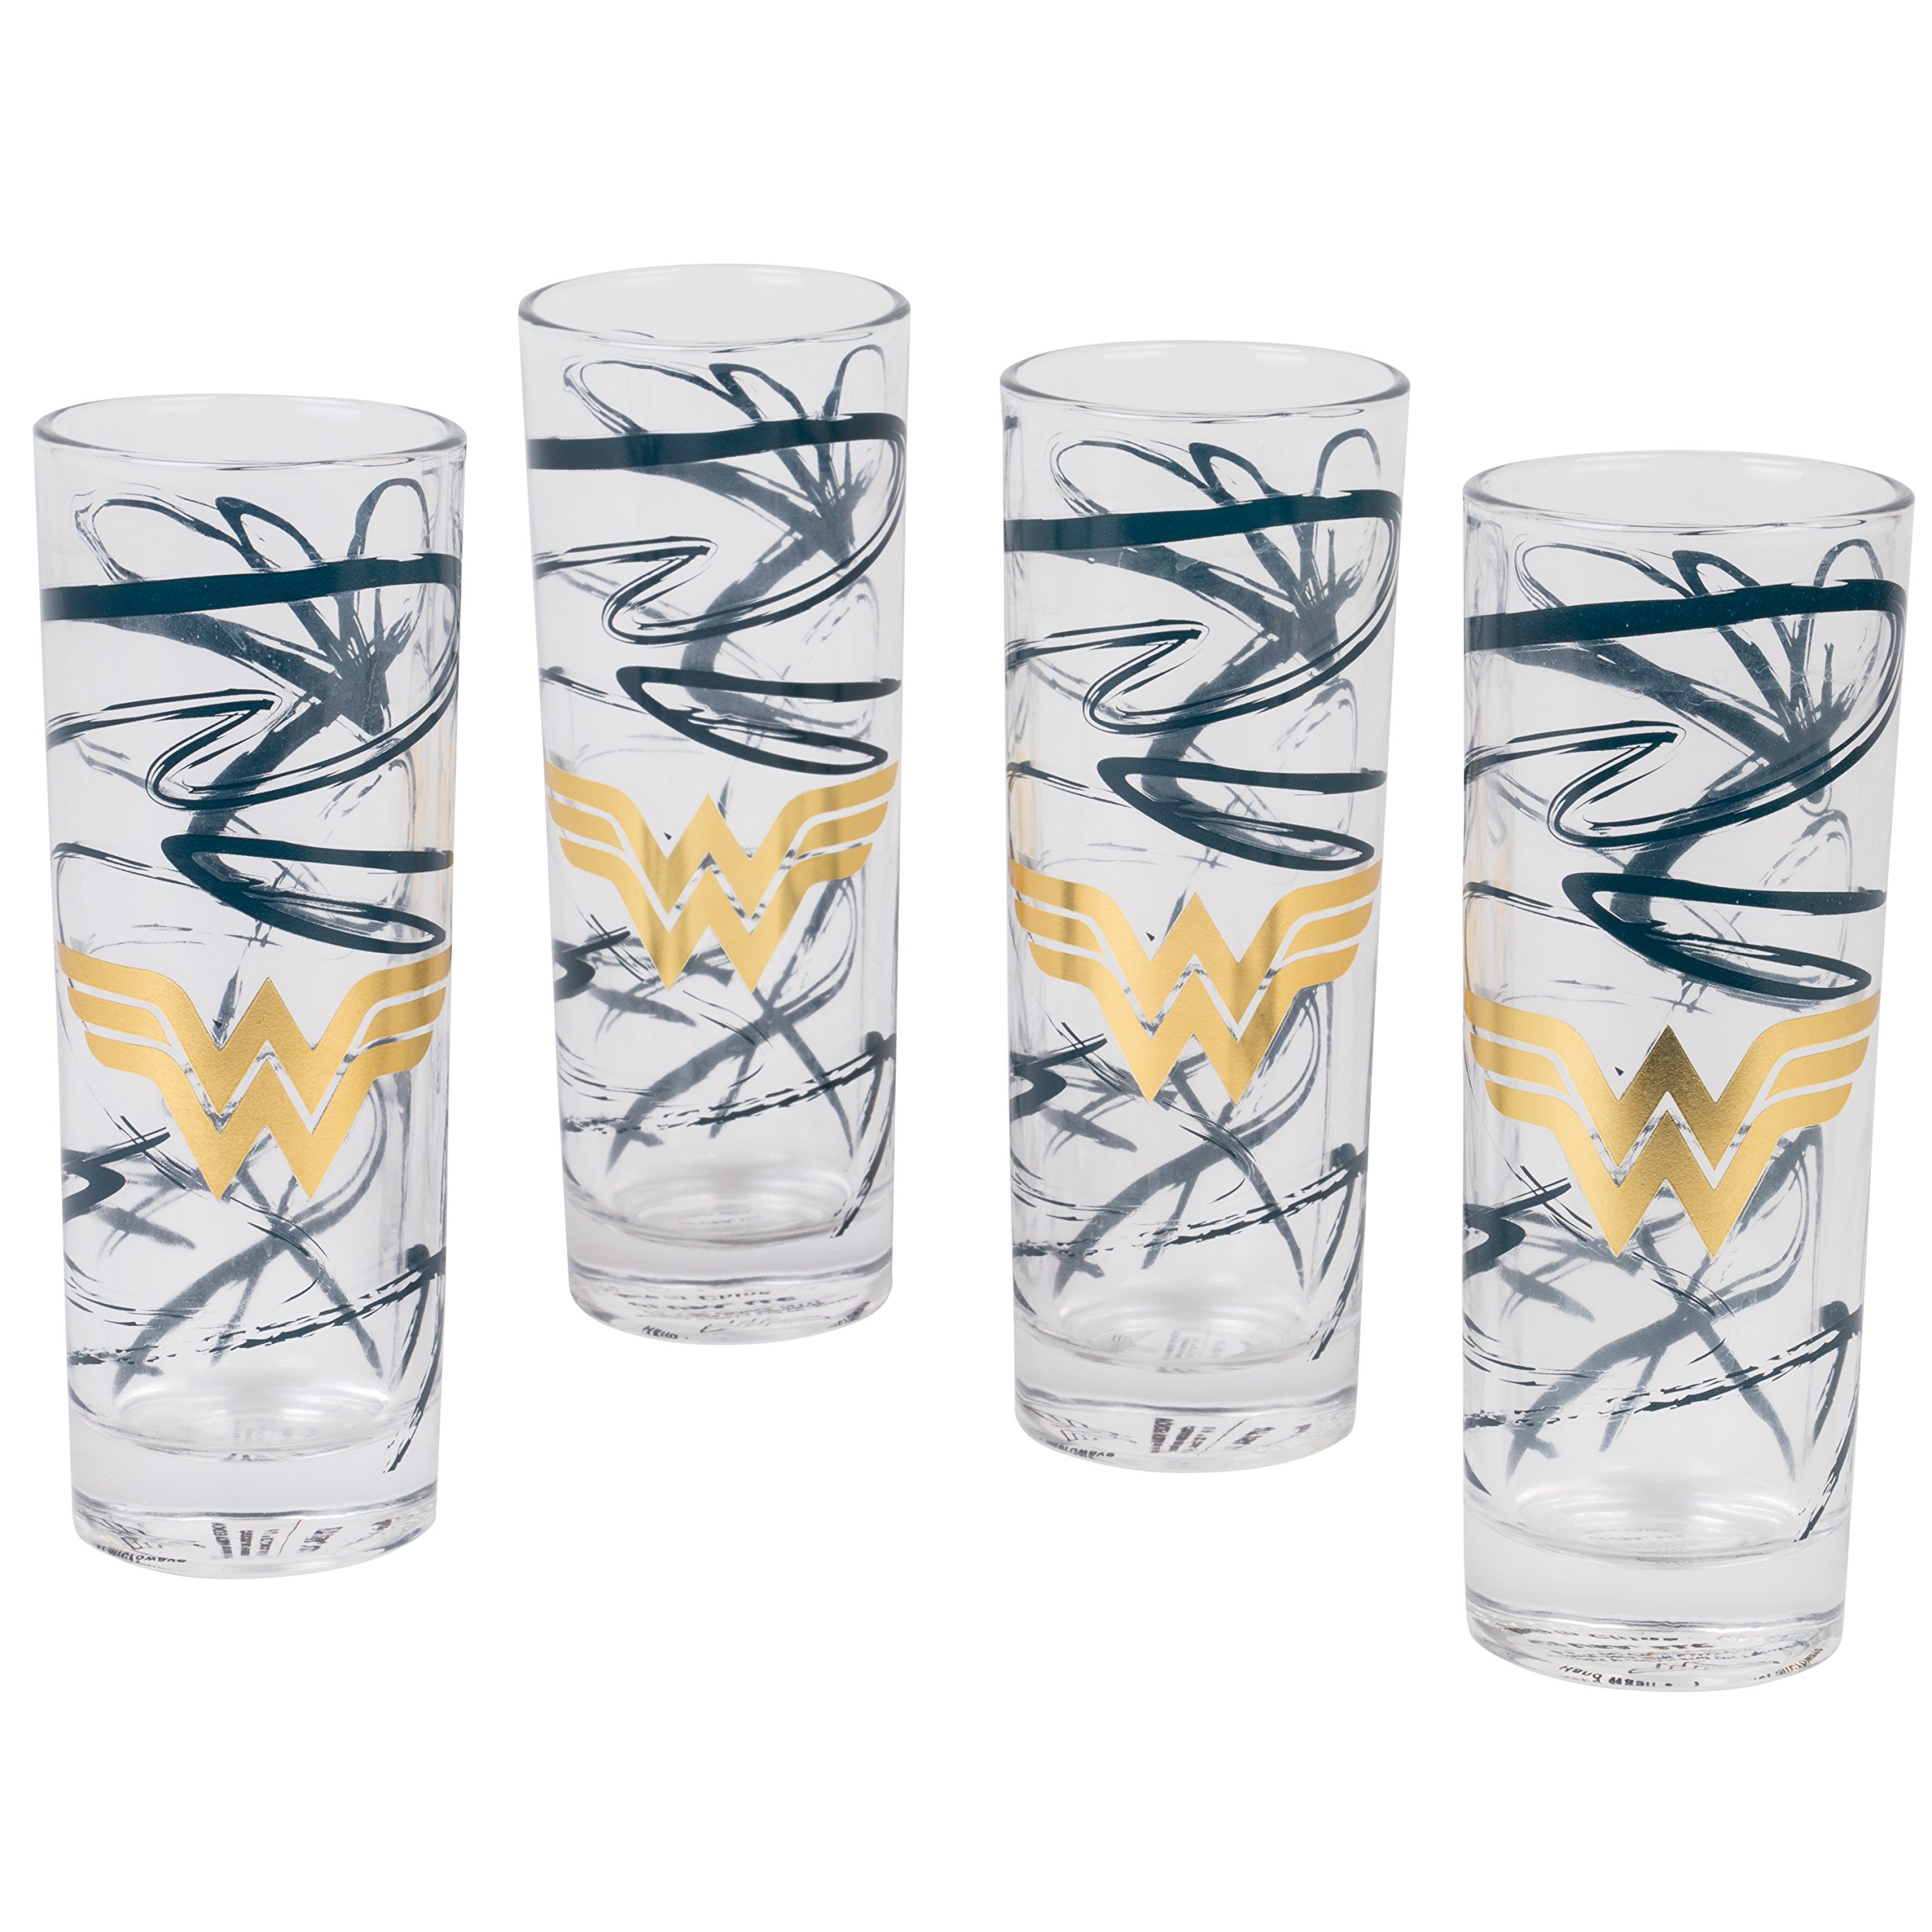 DC Wonder Woman Highball Glasses, Set of 4 - Cute Pinache Gold Wonder Woman Symbol with Blue Swirls - 8 oz